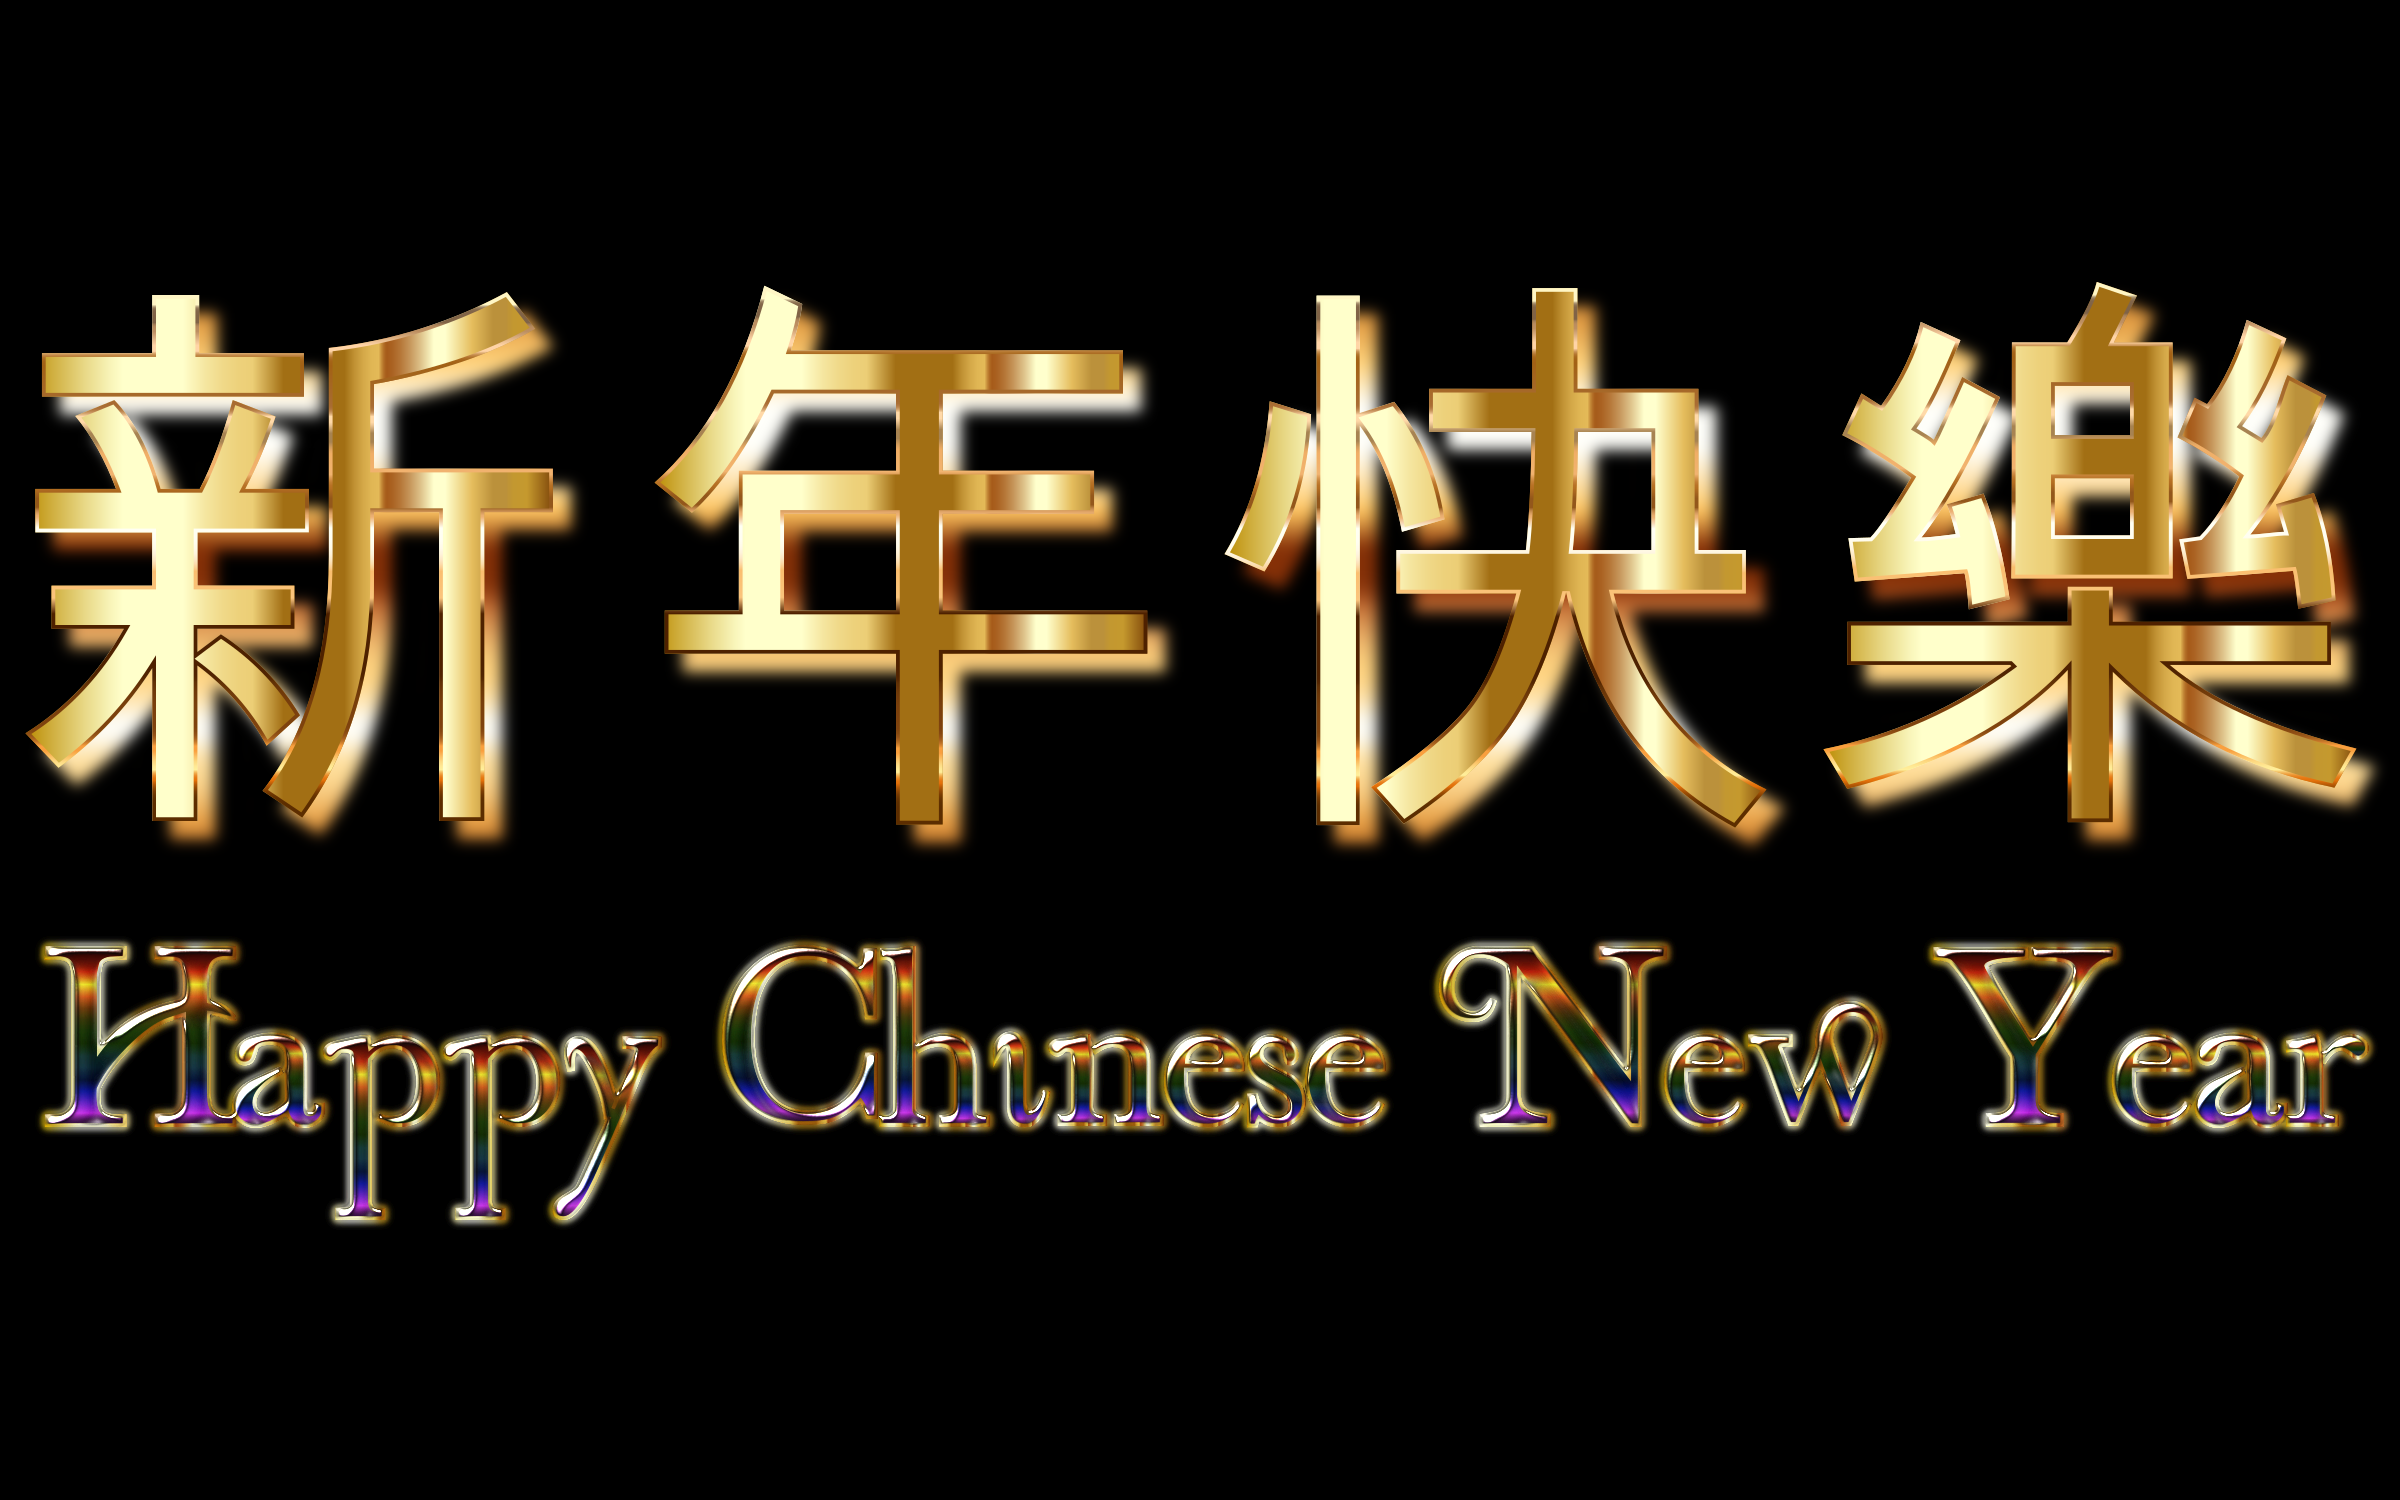 Happy Chinese New Year (2016) Enhanced by GDJ